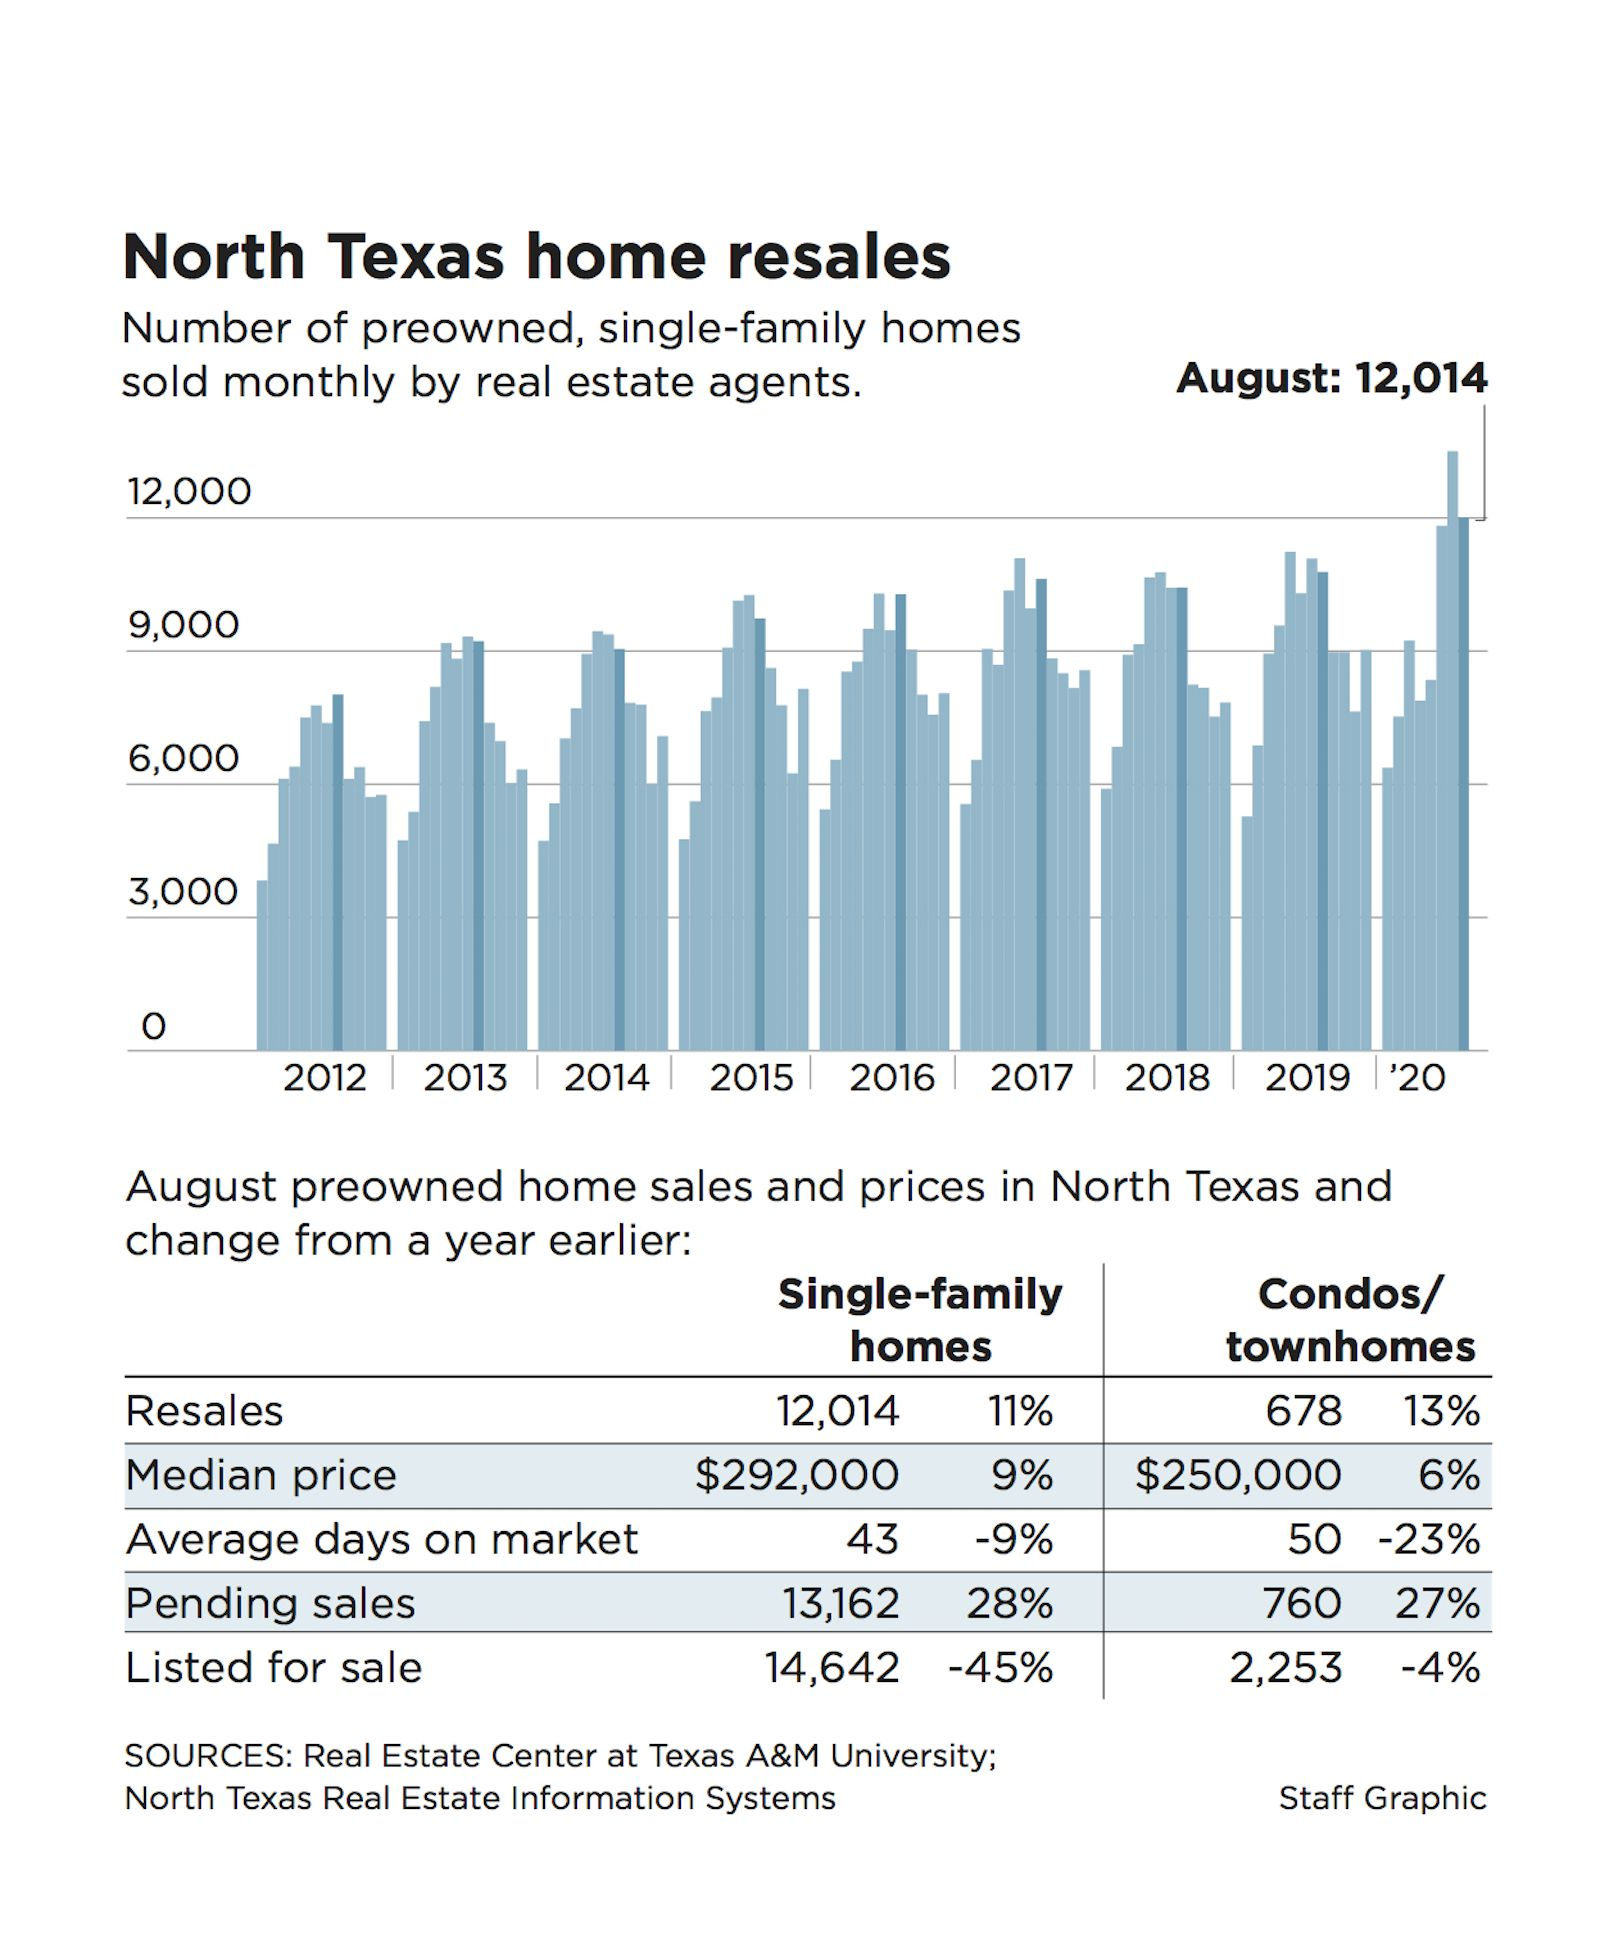 August was the second month in a row of double-digit percentage home sales gains in North Texas.